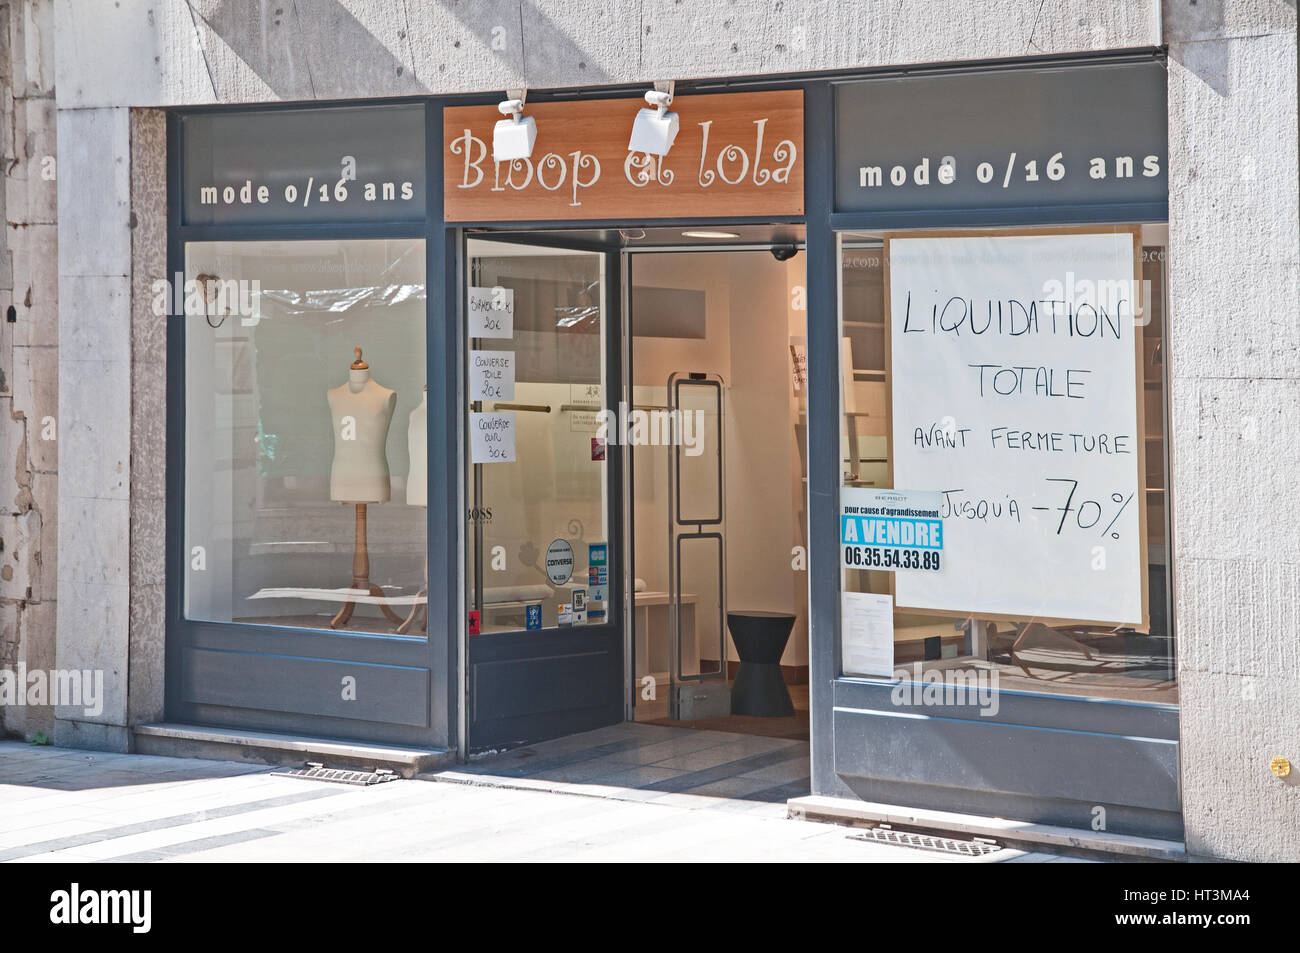 Shop Bloop la Lola closed for liquidation on the Grand Rue   Besancon France with notices reading Liquidation Totale - Stock Image